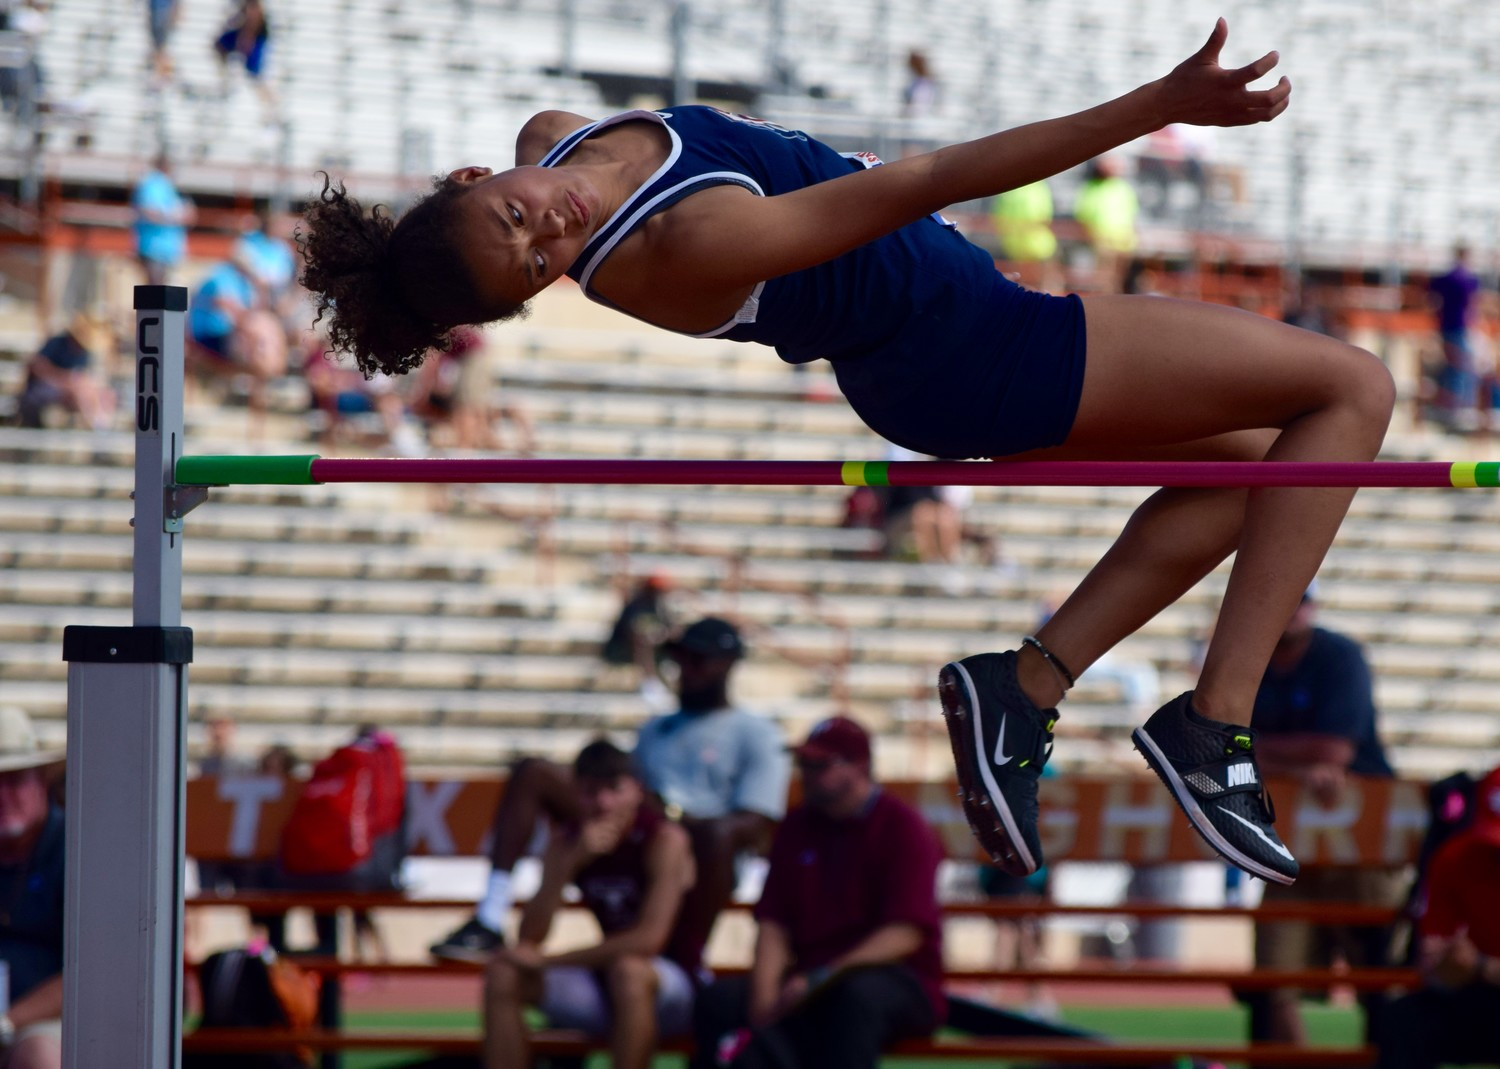 Glenn freshman Chloe Coffee finished fourth in the high jump at the State Track & Field with a jump of 5 feet, 4 inches.